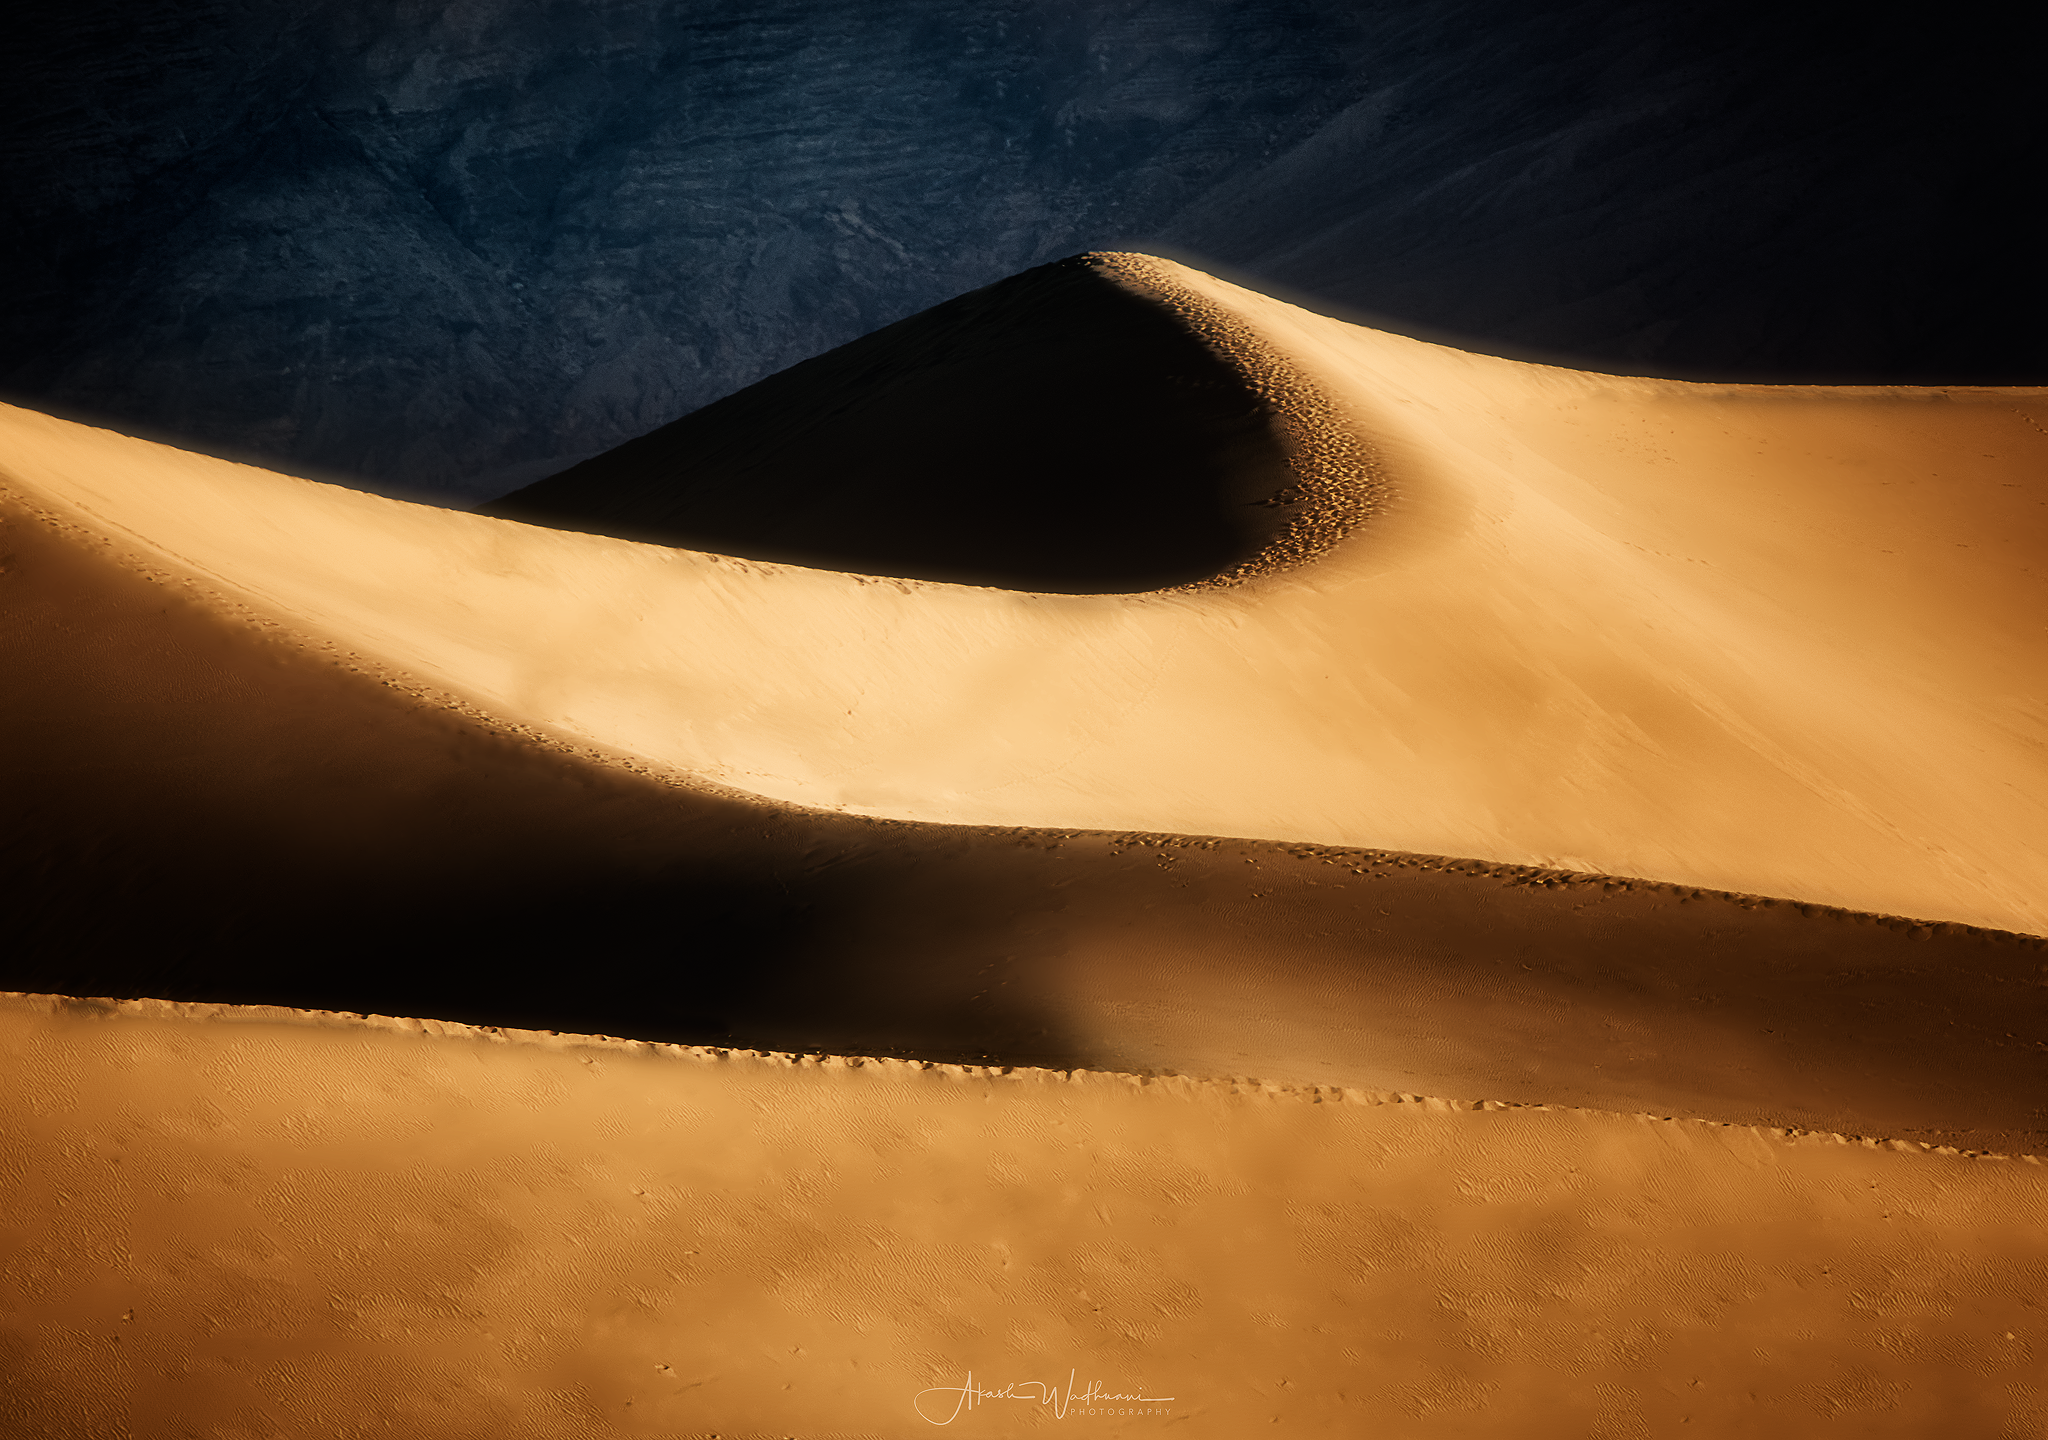 Sunrise brings the largest dune, known as Star Dune, fresh drama. A7rii 900mm F8